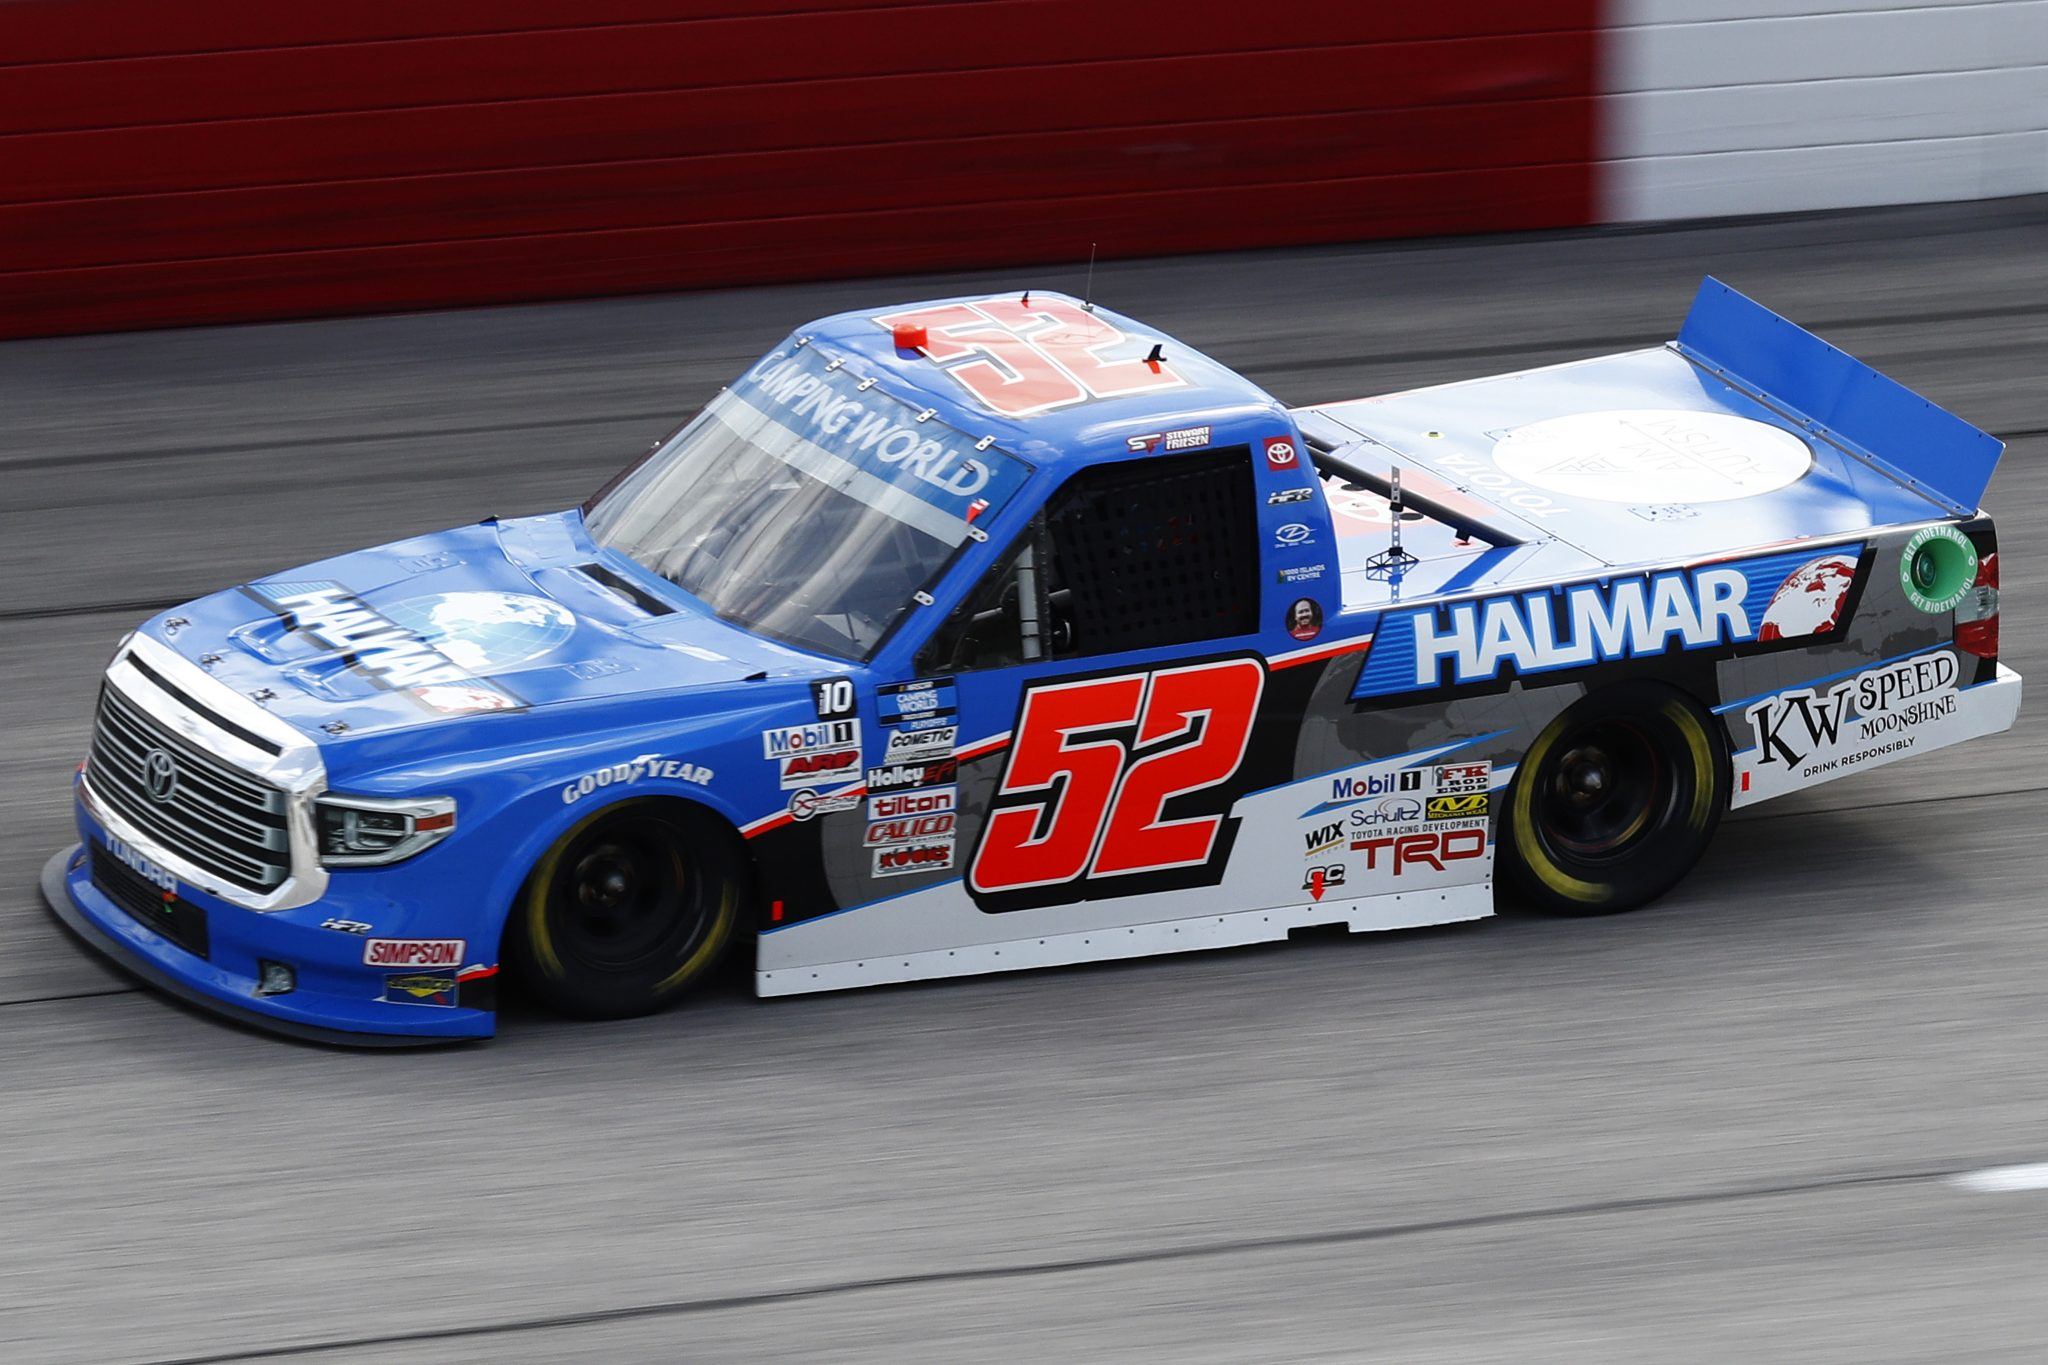 DARLINGTON, SOUTH CAROLINA - SEPTEMBER 05: Stewart Friesen, driver of the #52 Halmar International Toyota, drives during the NASCAR Camping World Truck Series In It To Win It 200 at Darlington Raceway on September 05, 2021 in Darlington, South Carolina. (Photo by Jared East/Getty Images)   Getty Images